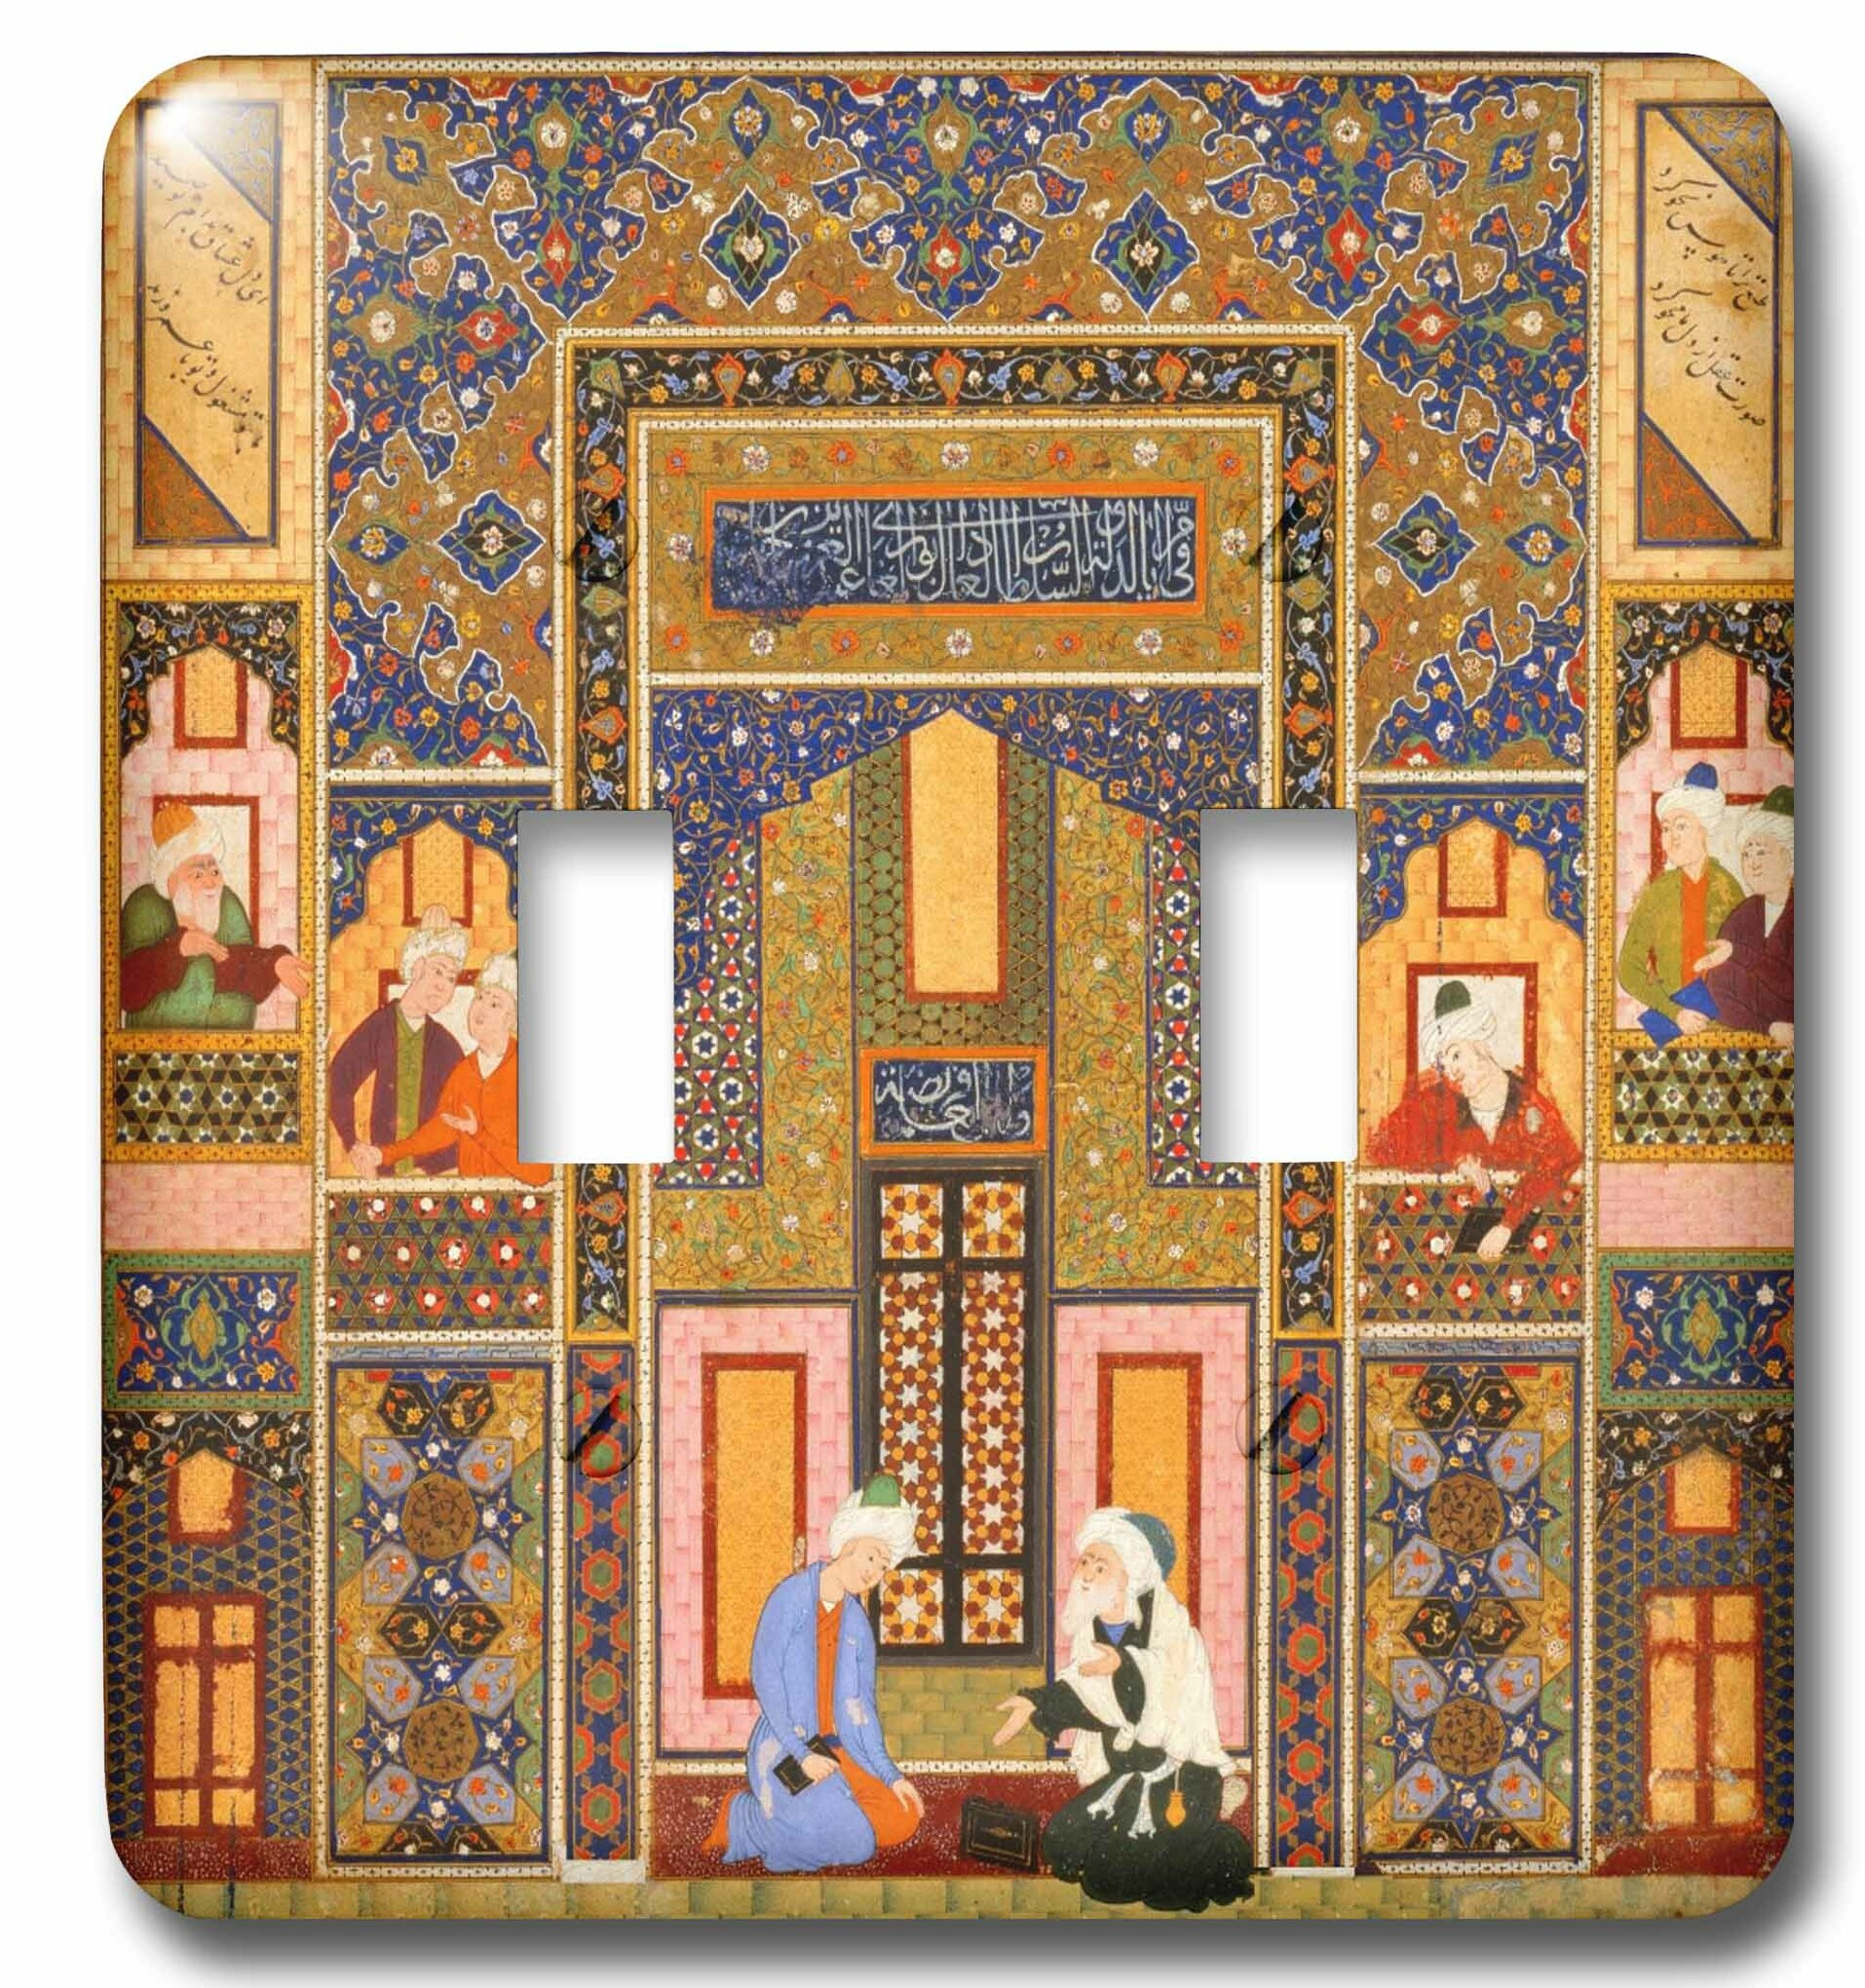 3drose The Meeting Of The Theologians Islamic Persian Art 2 Gang Toggle Light Switch Wall Plate Wayfair